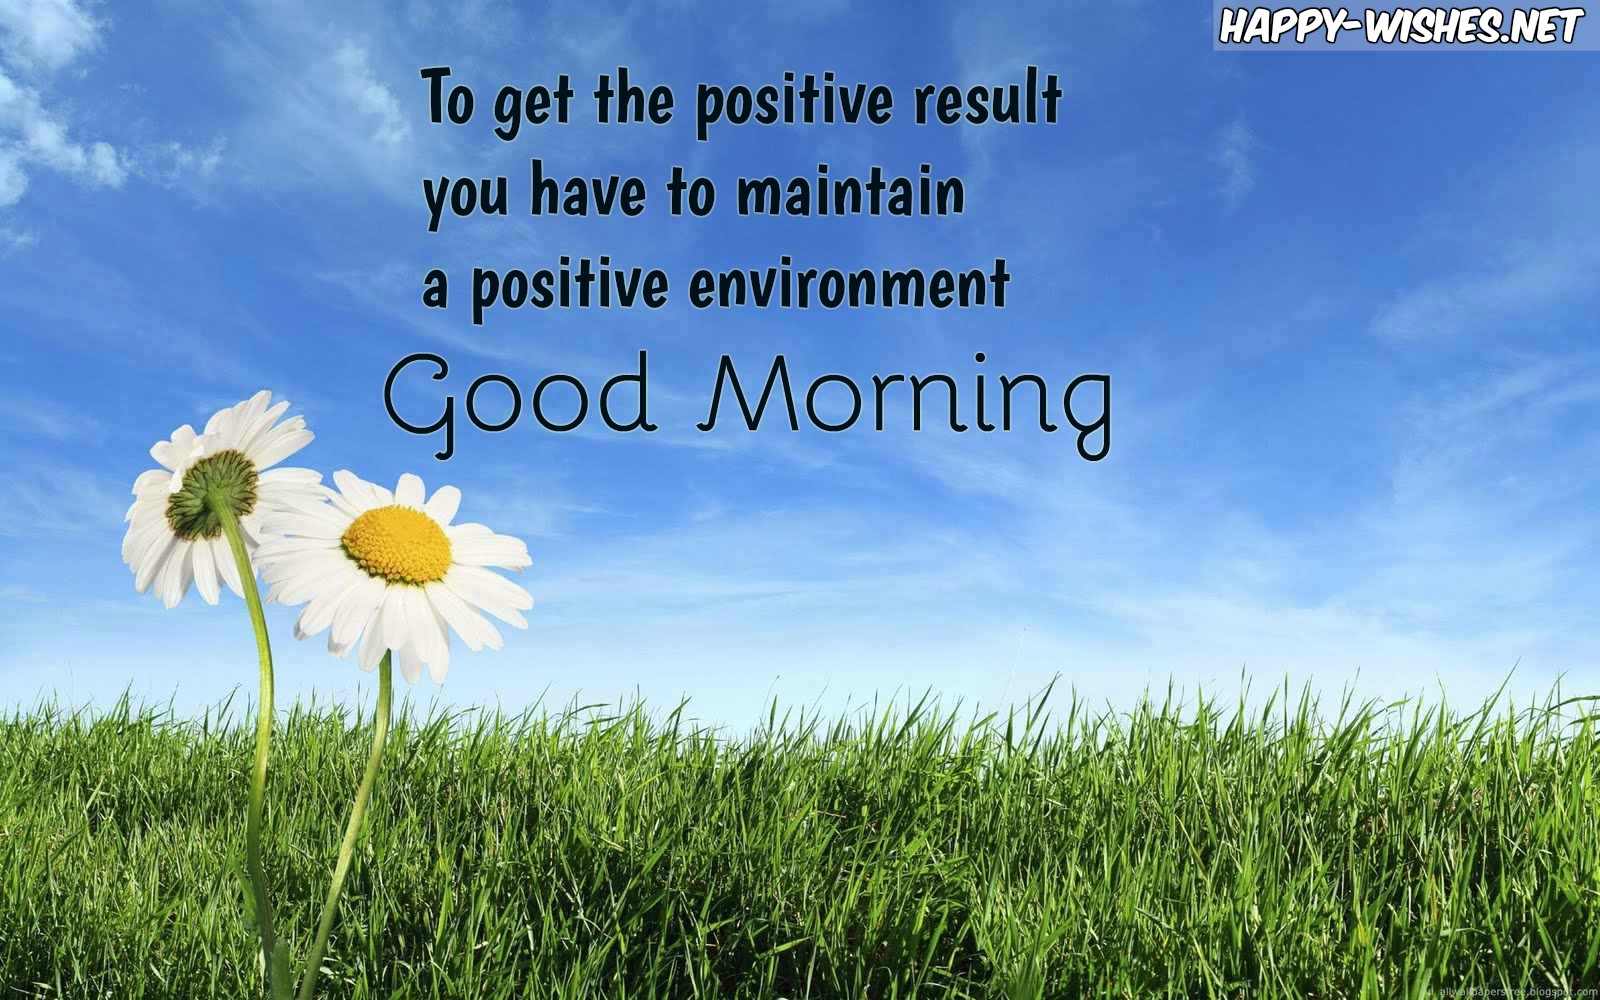 Good Morning Inspirational Quotes: 85+ Inspirational Good Morning Messages [ Motivational